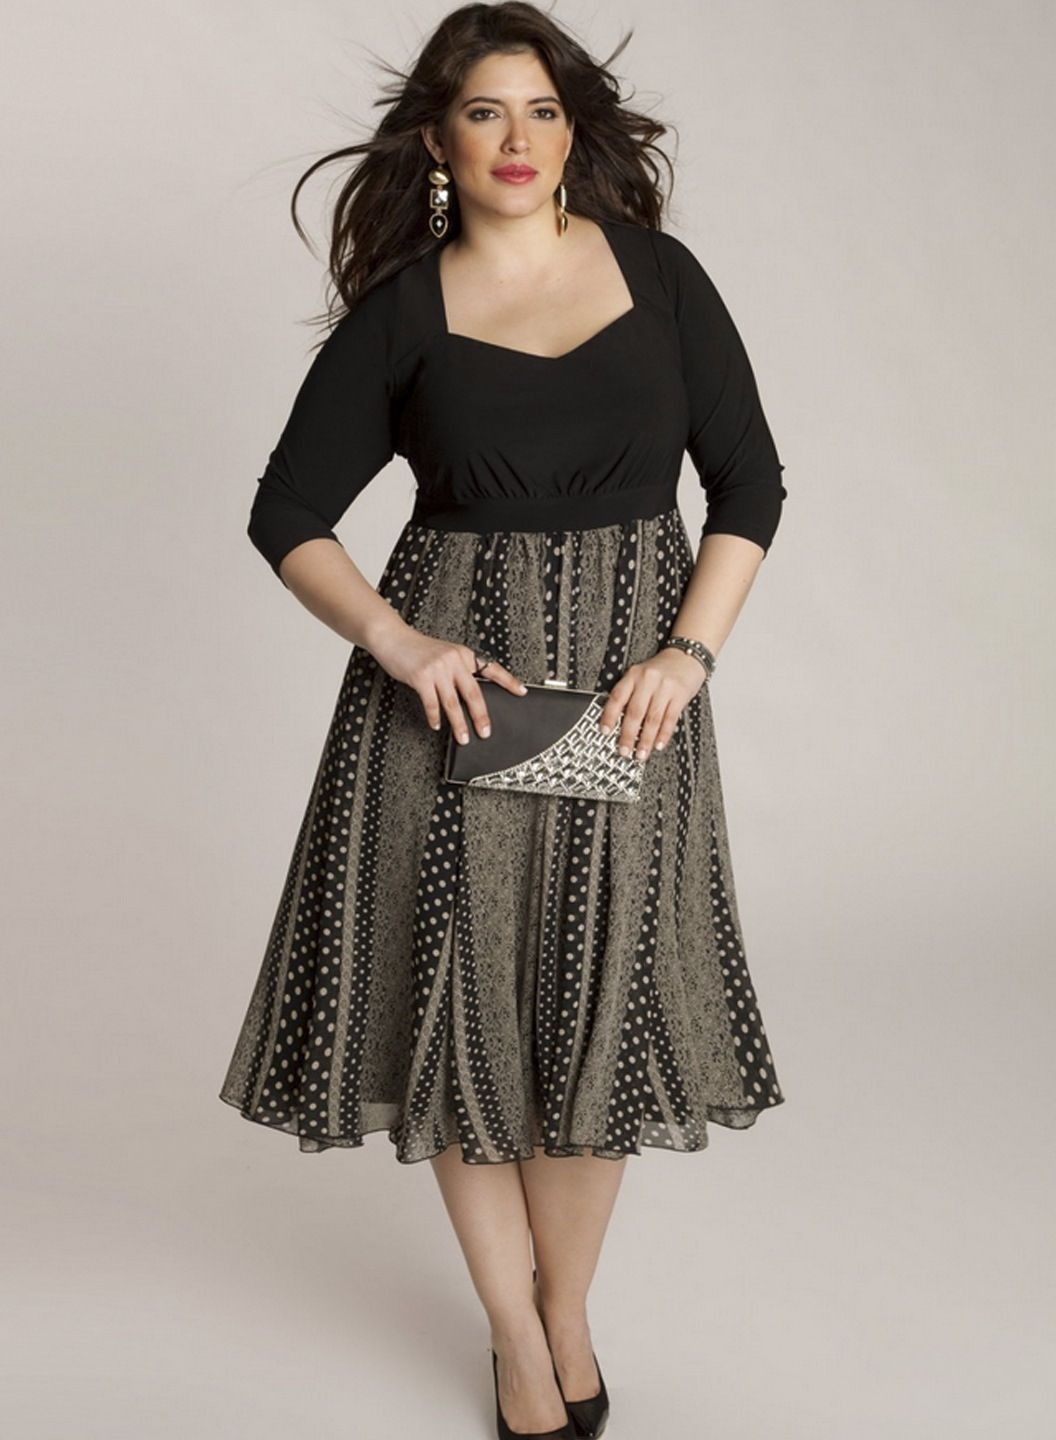 plus size dating website reviews Chubbybunniecom is a online dating service for plus sized singles for to love and romance in a comfortable environment.